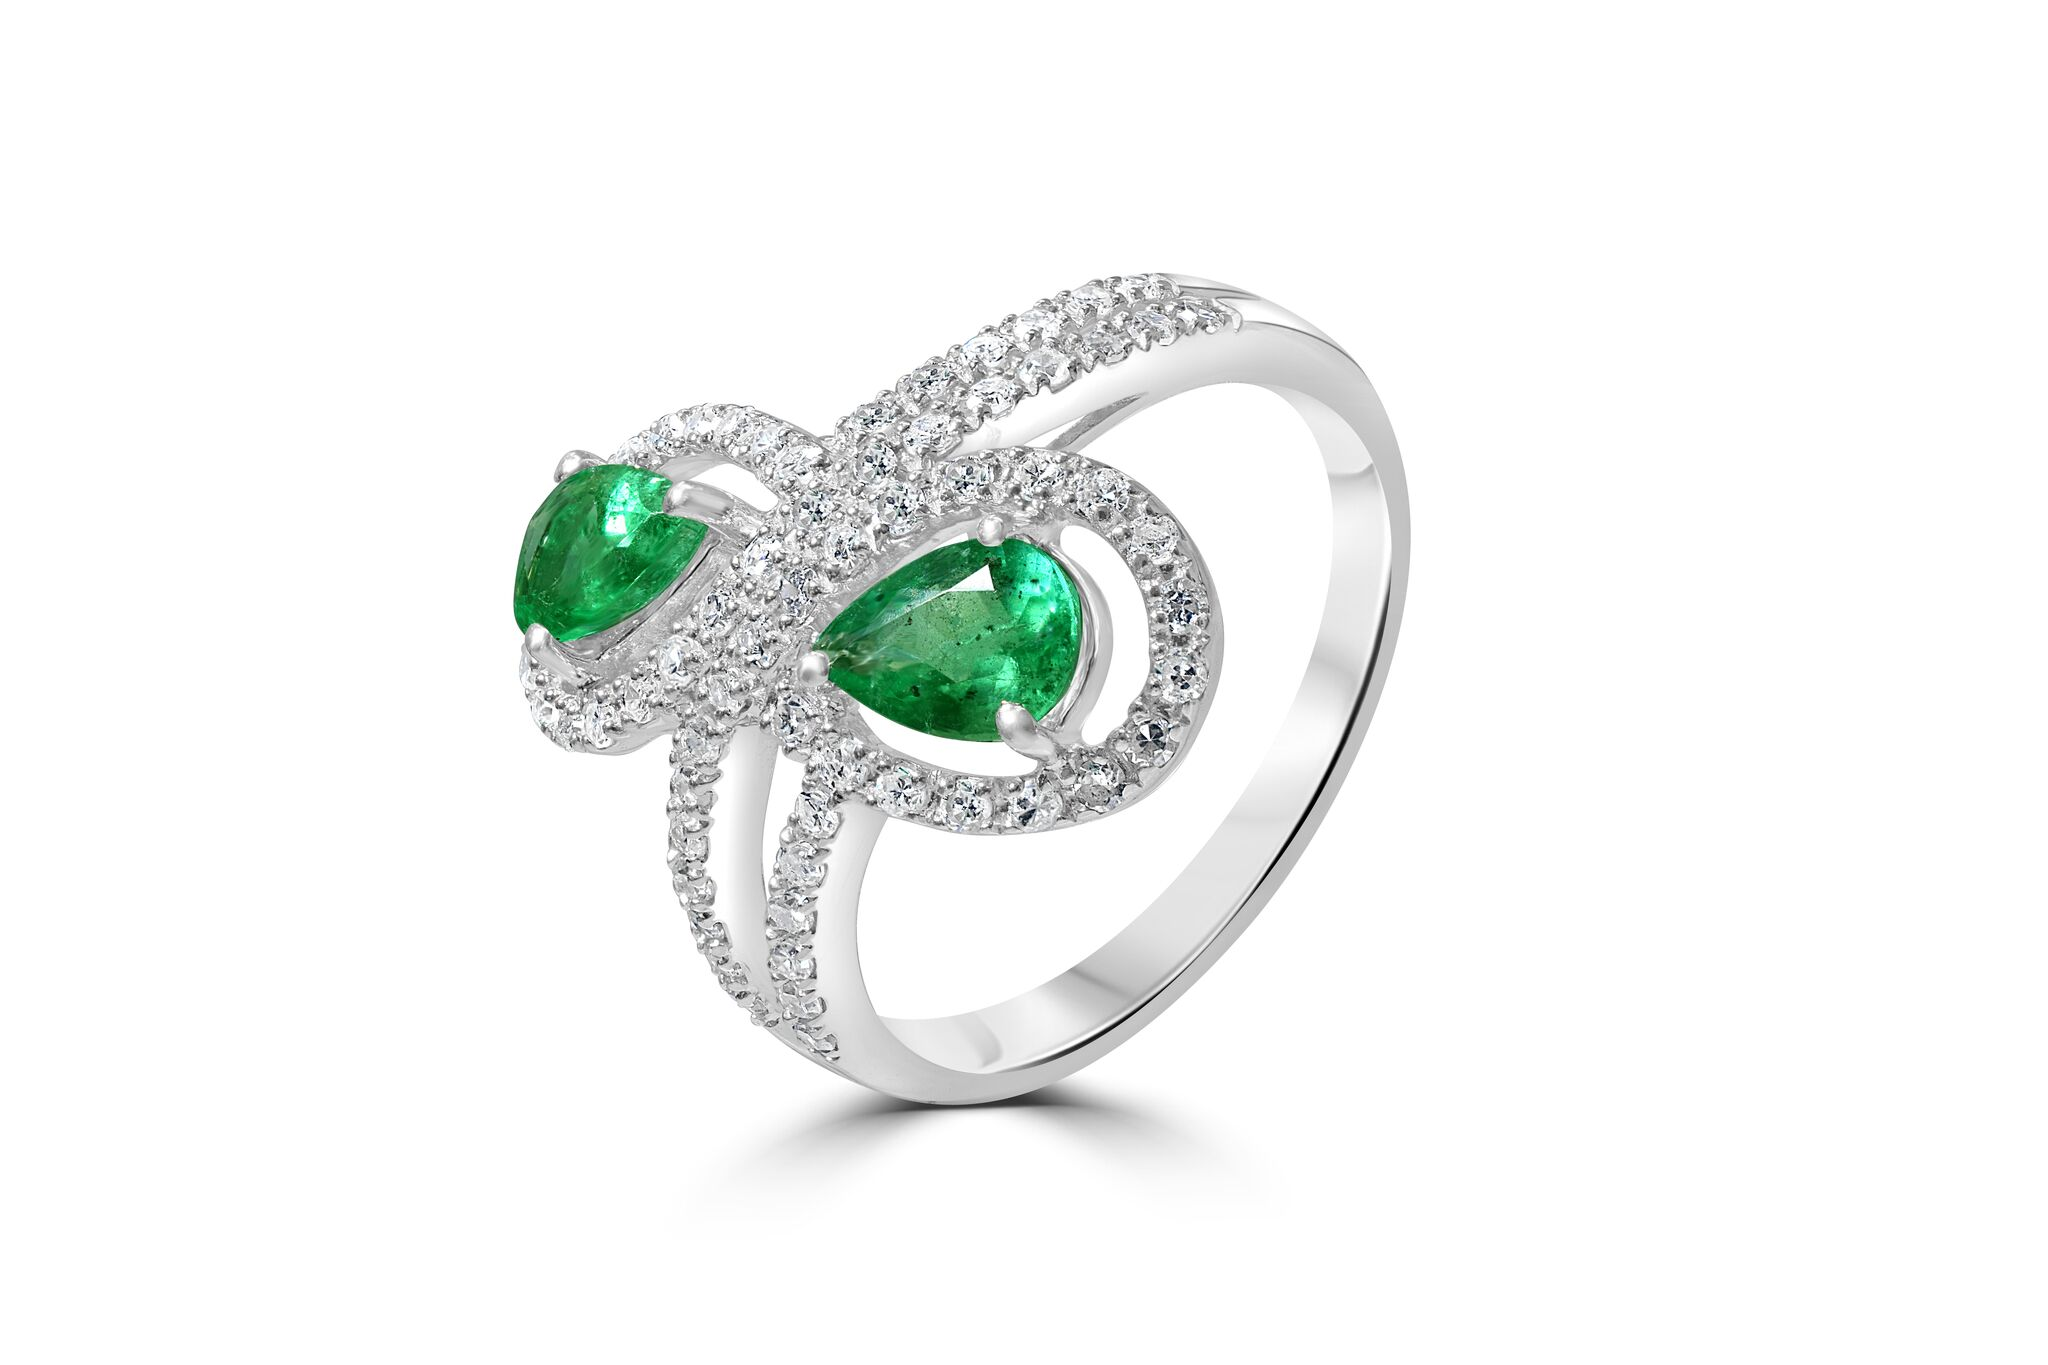 Two Stone Emerald and Diamond 9ct White Gold Ring RRP £2695 Size L